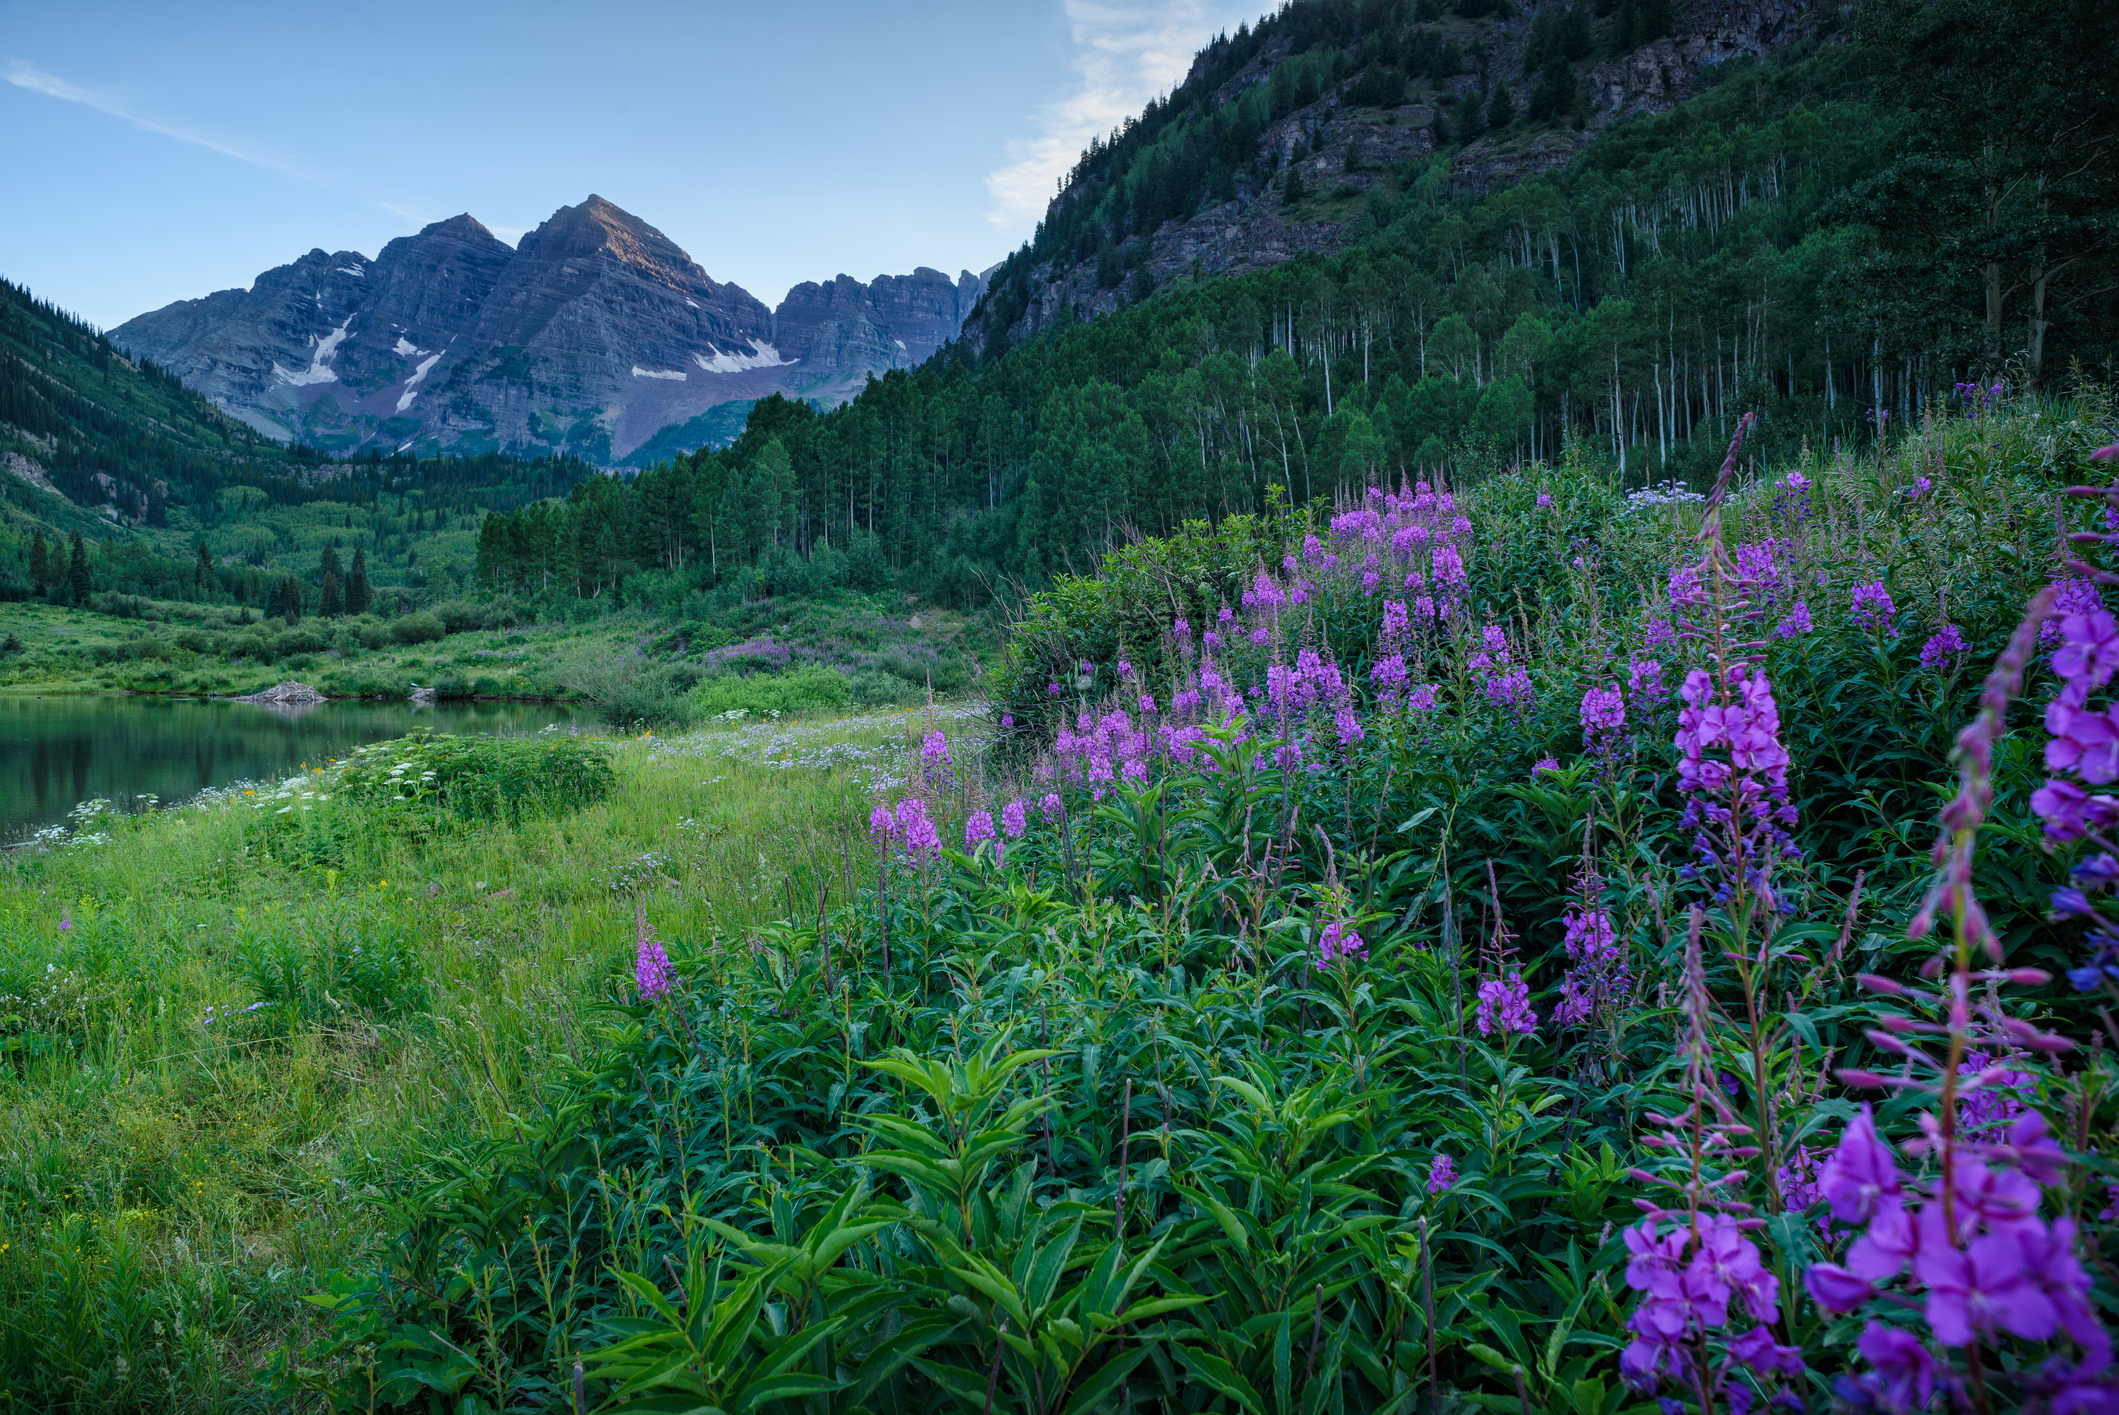 Nature - Nature is vital to the physical and mental health of all people and is one of life's great joys. We support legal defense funds and environmental protection organizations.